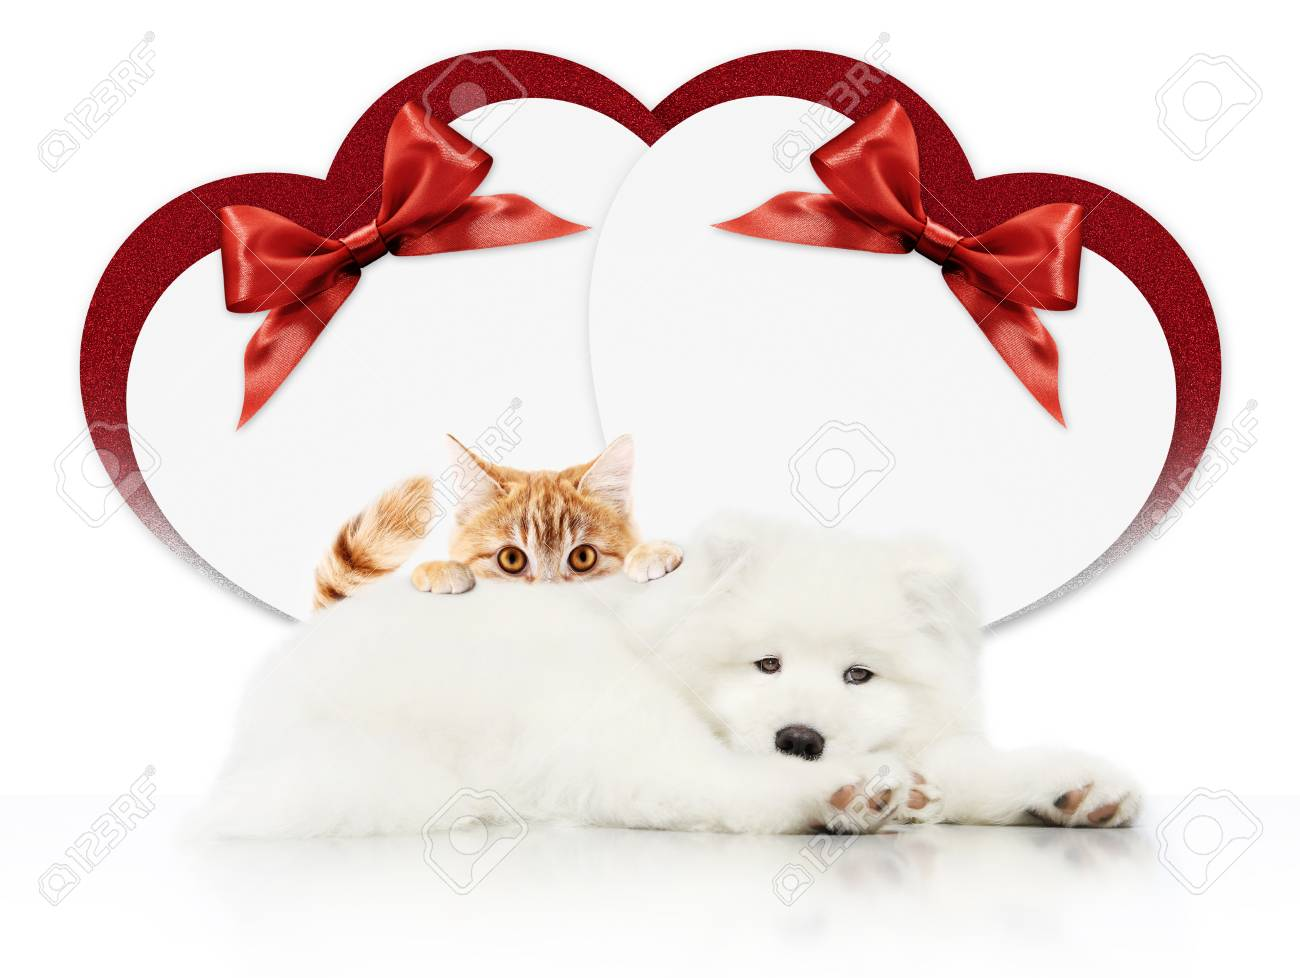 Valentine Gift Card Or Pets Store Signboard With Cat And Dog Stock